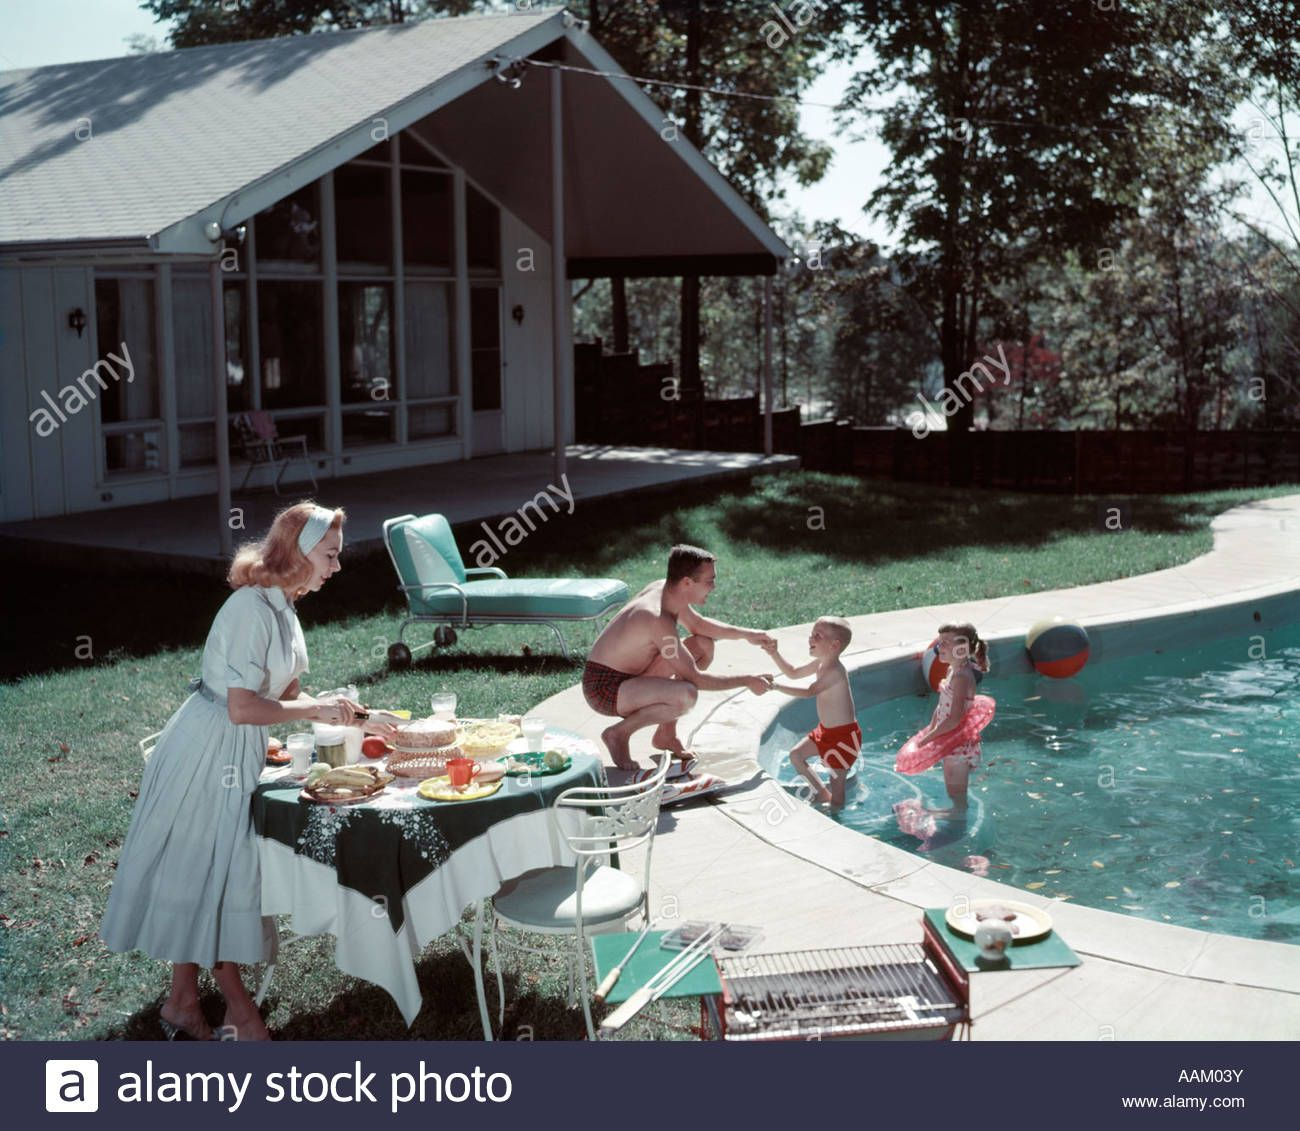 1950s Family Of 4 Backyard Swimming Pool House Mom Serving Food Meal Stock Photo Royalty Free Image 12 Swimming Pool House Swimming Pools Backyard Pool House